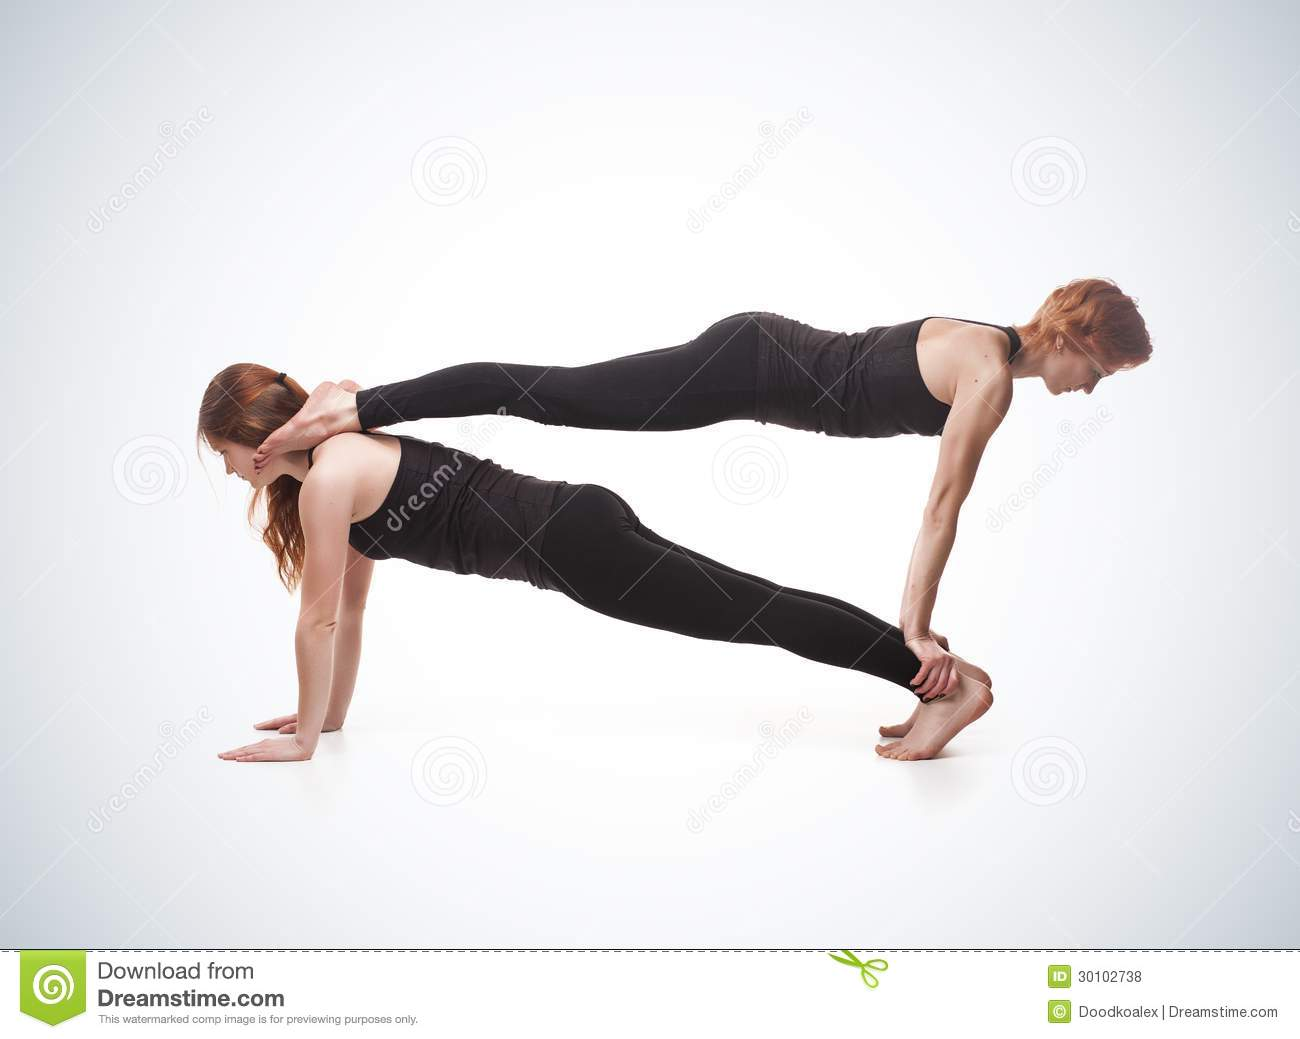 Paired yoga. Two women practicing yoga on blue gradient background.